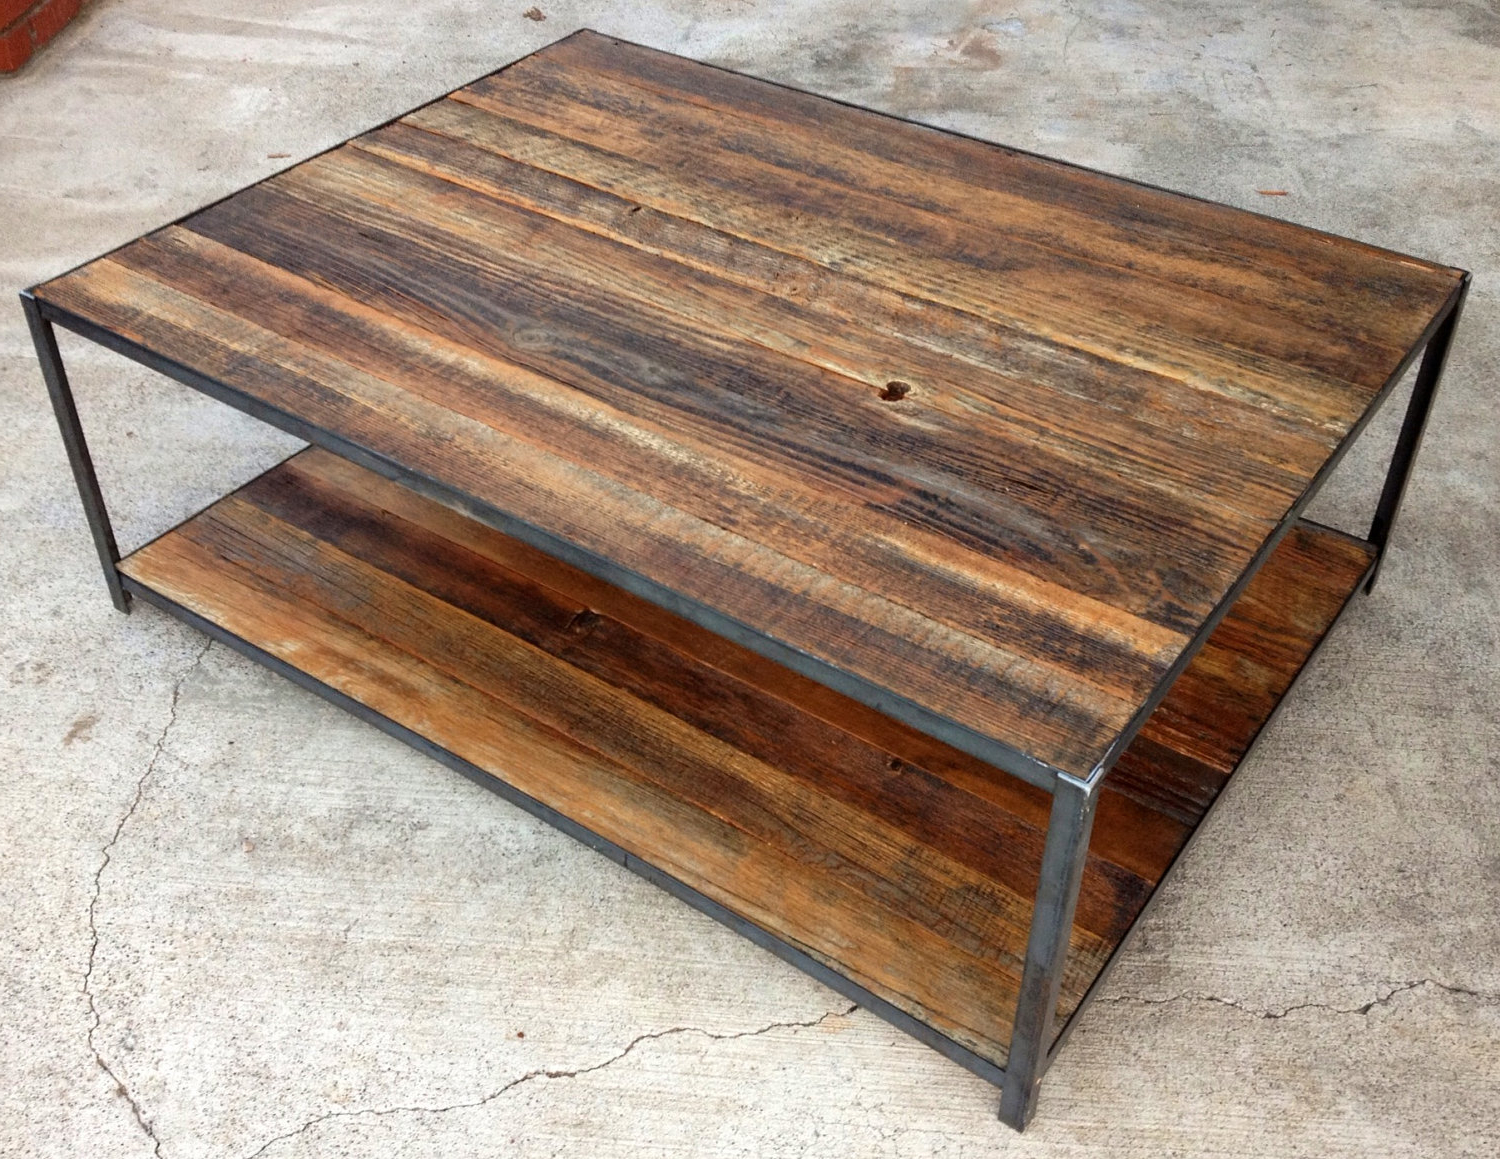 Favorite Iron Wood Coffee Tables With Wheels Intended For Best Reclaimed Wood Coffee Table Diy 53 On Home Design (View 20 of 20)